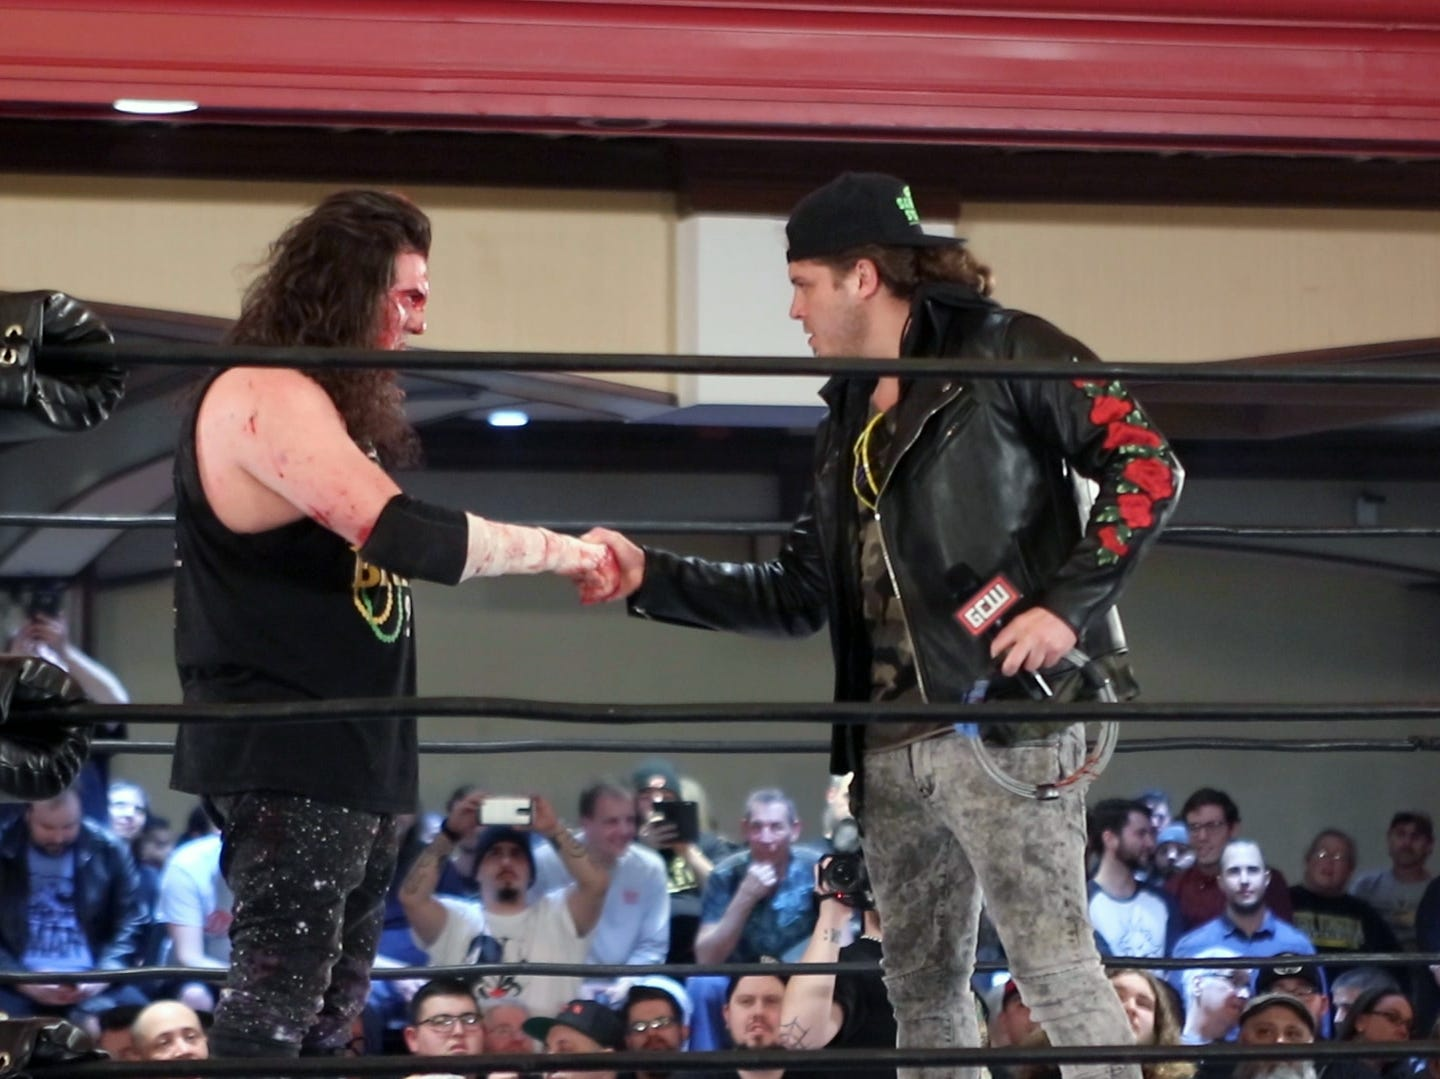 Joey Janela, right, fist bumps Jimmy Lloyd, left, during a Game Changer Wrestling Show at the Showboat Hotel in Atlantic City on Feb. 16. Janela is preparing for his comeback at the annual GCW Joey Janela's Spring Break show, held in Jersey City on April 5 and April 6, after a knee injury last year.